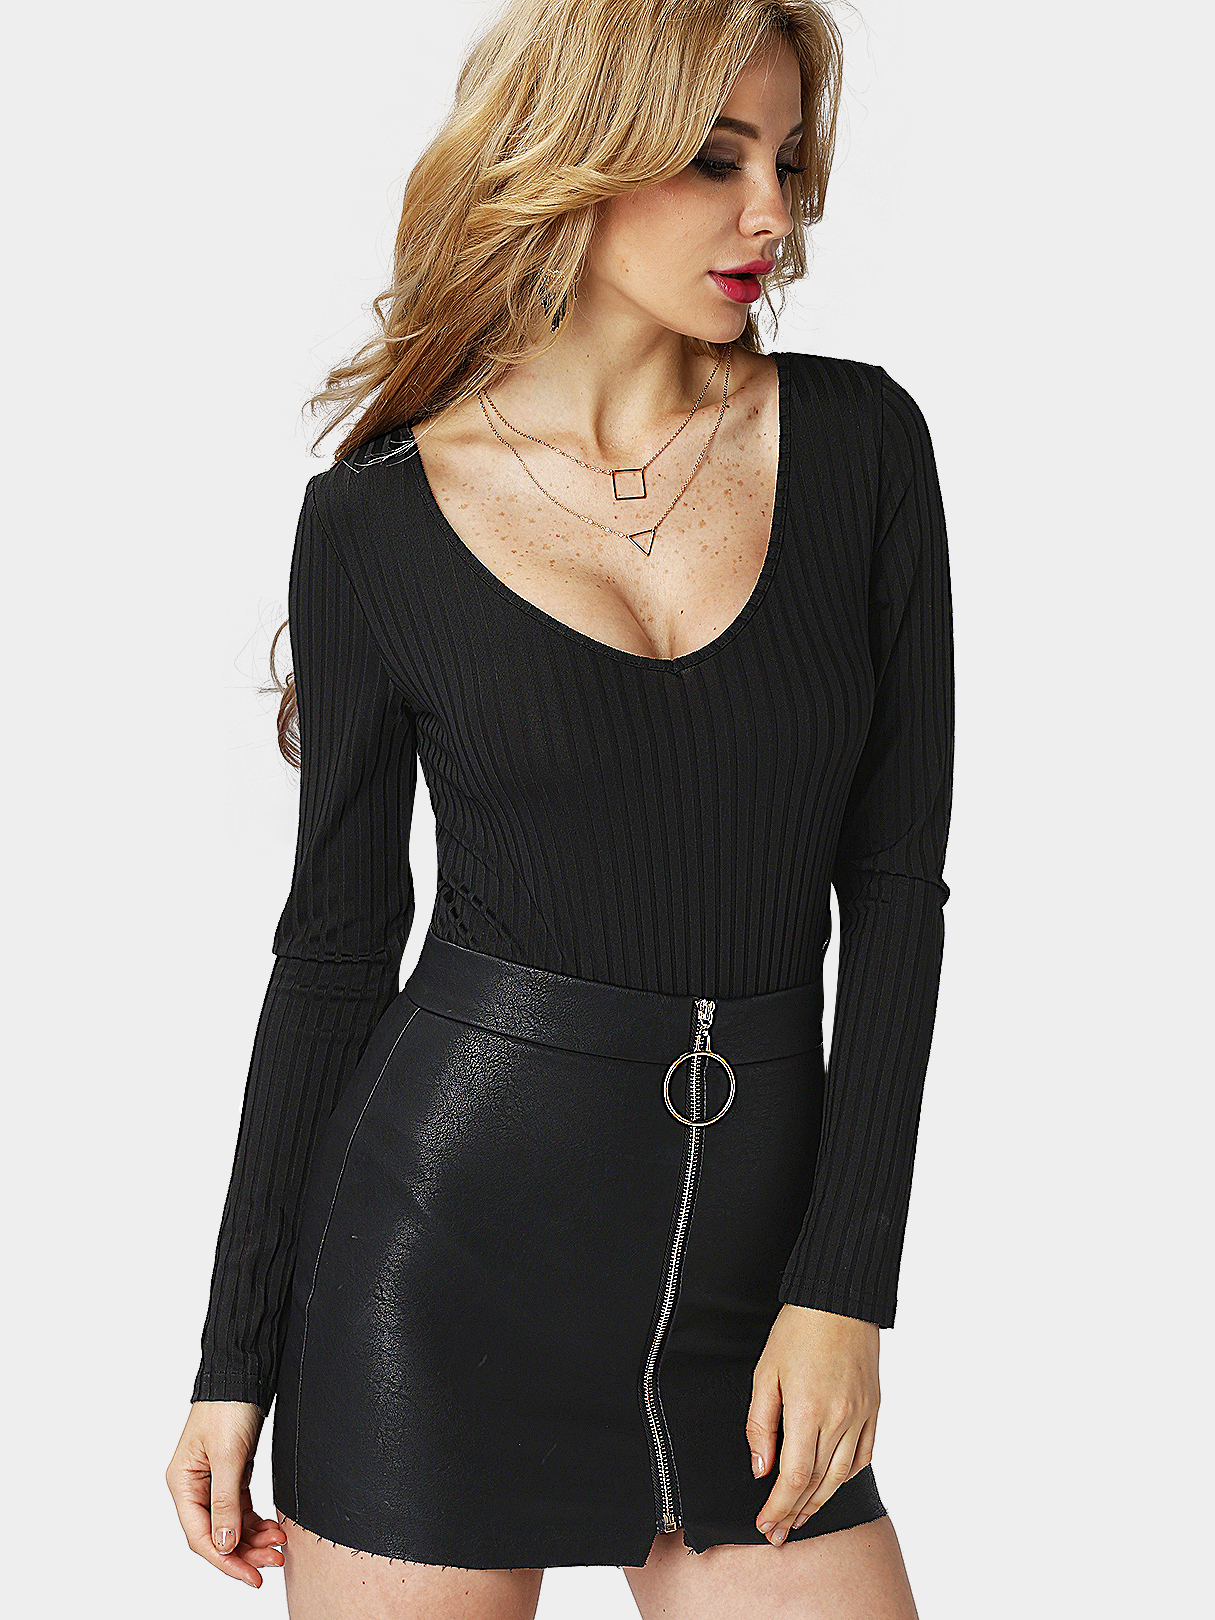 Sexy Black Long Sleeves Lace-up Side Bodysuit